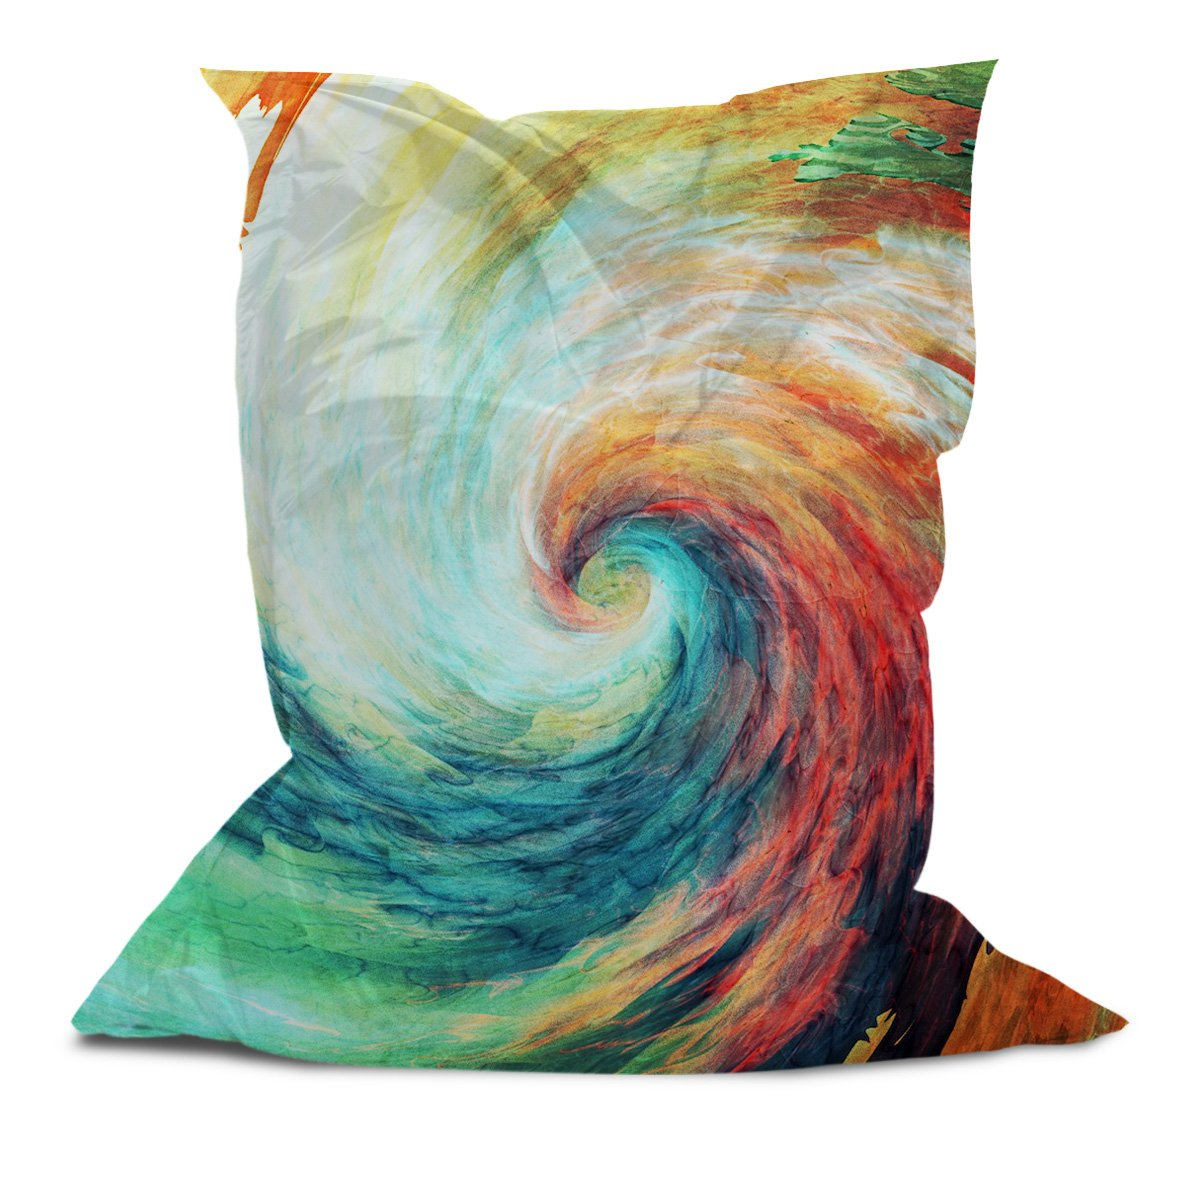 AAA Bean Bags - Comfortable Pillow Bean Bag Chair Lounger for Adults Kids Teens with Printed Vortex (3' x 4.4')